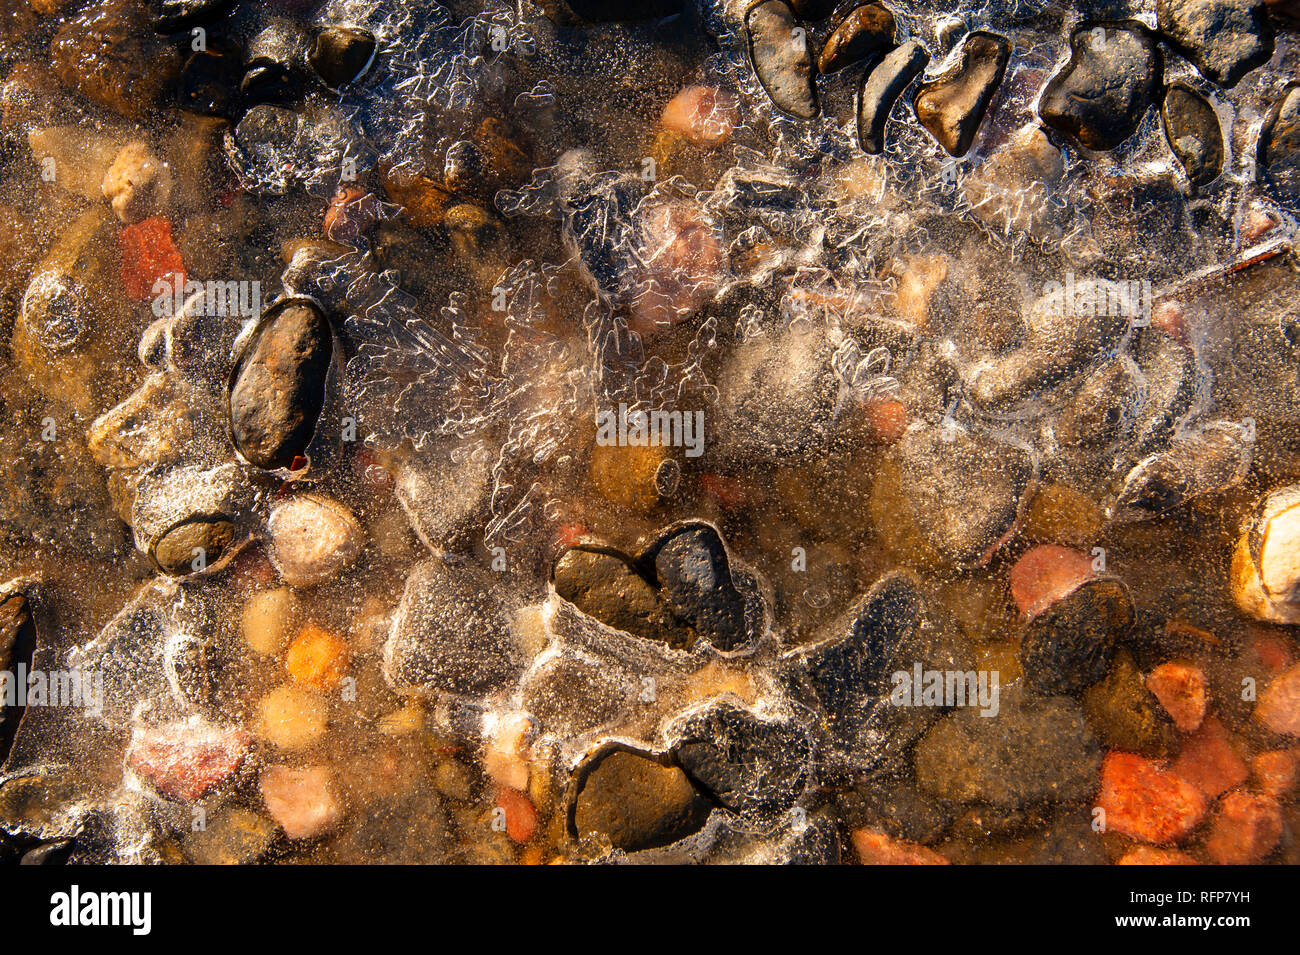 Pebbles in a frozen pond, Cradle Mountain, Australia - Stock Image